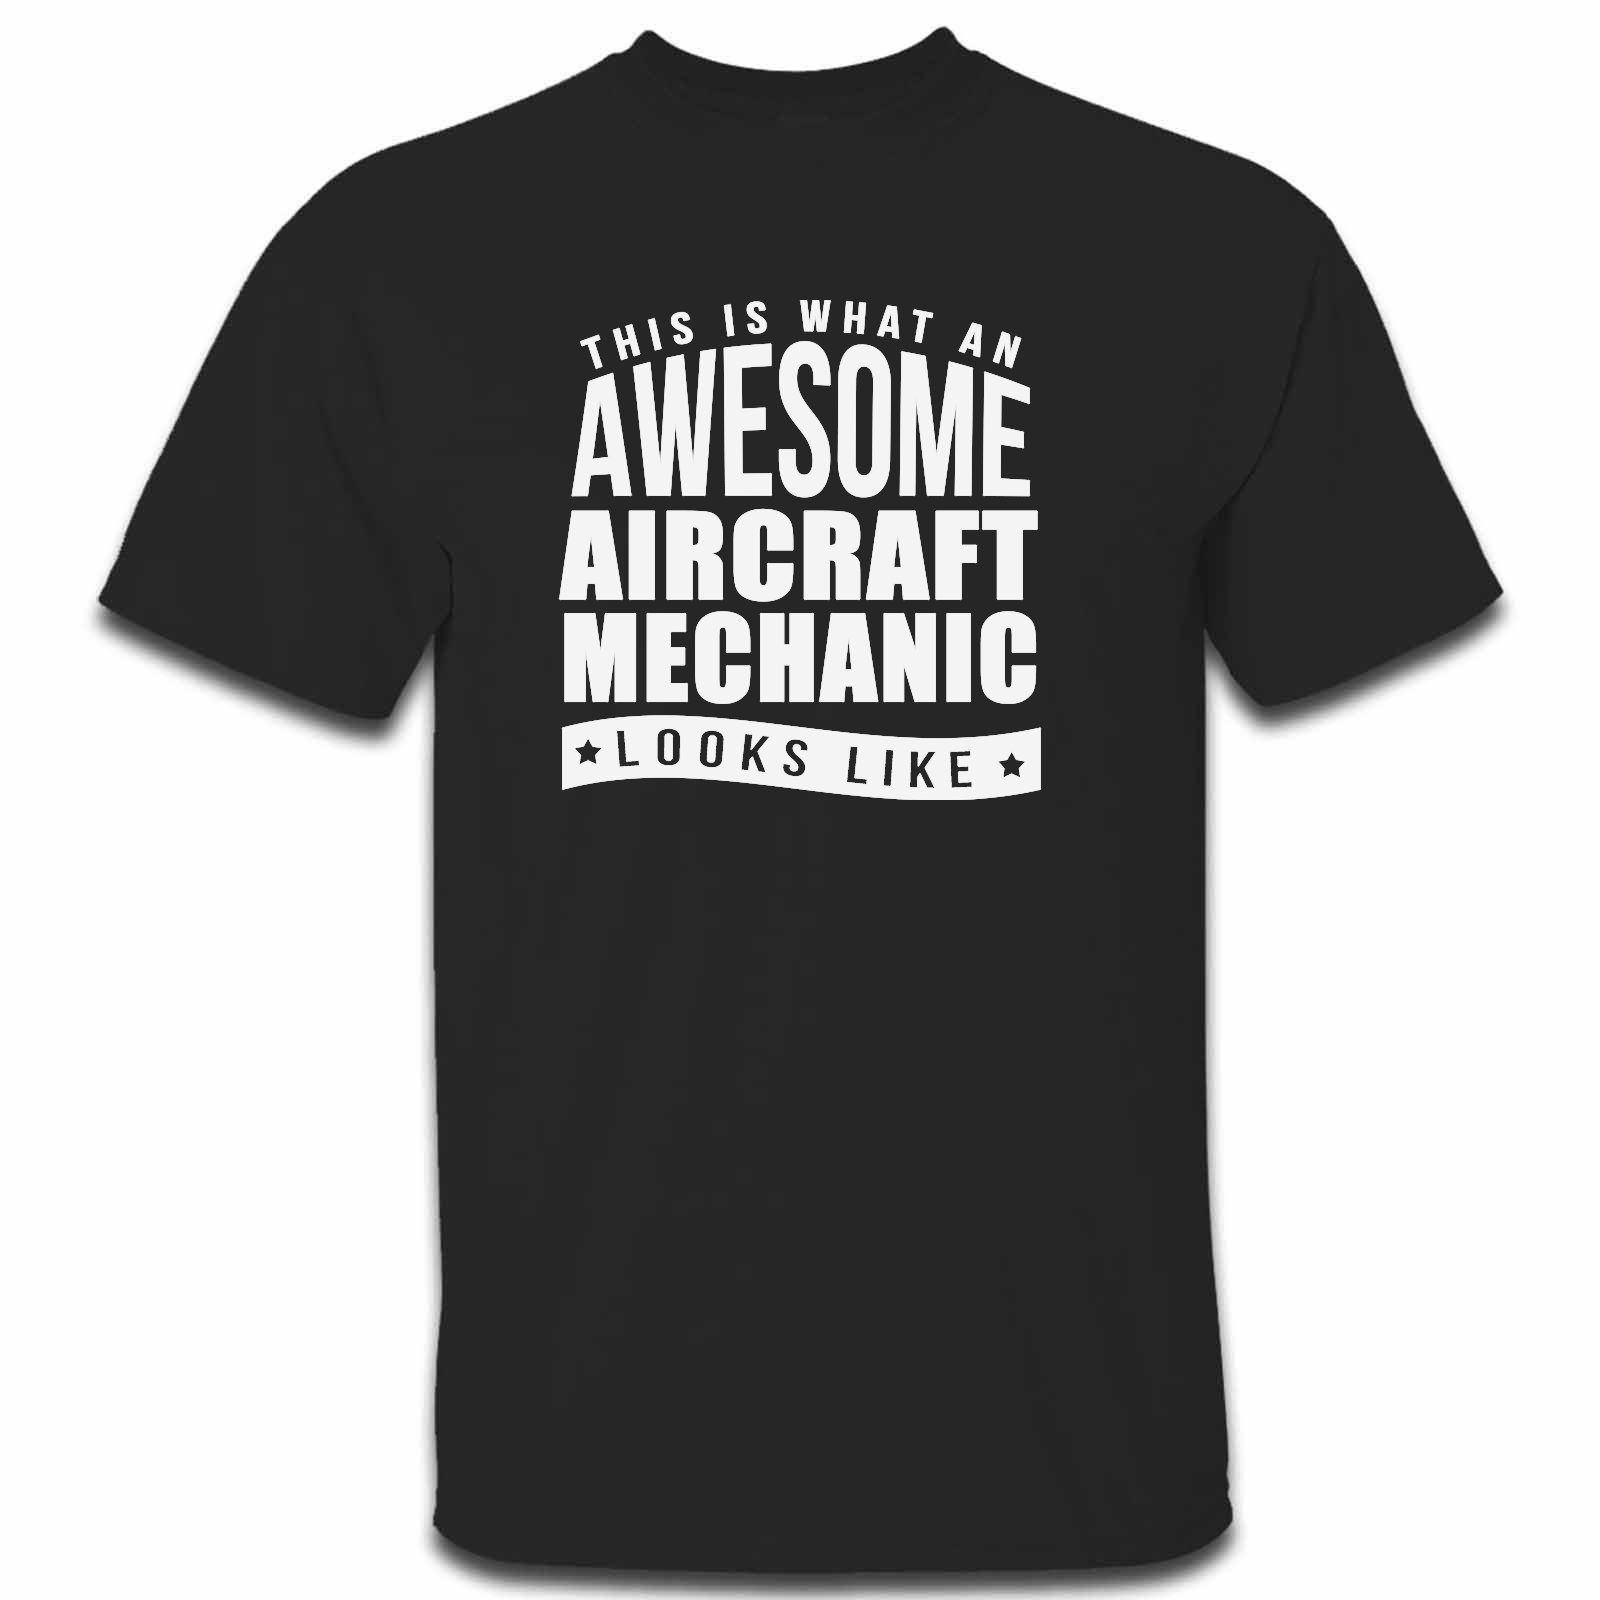 Picture of This Is What An Awesome Aircraft Mechanic Looks Like Mens Tshirt